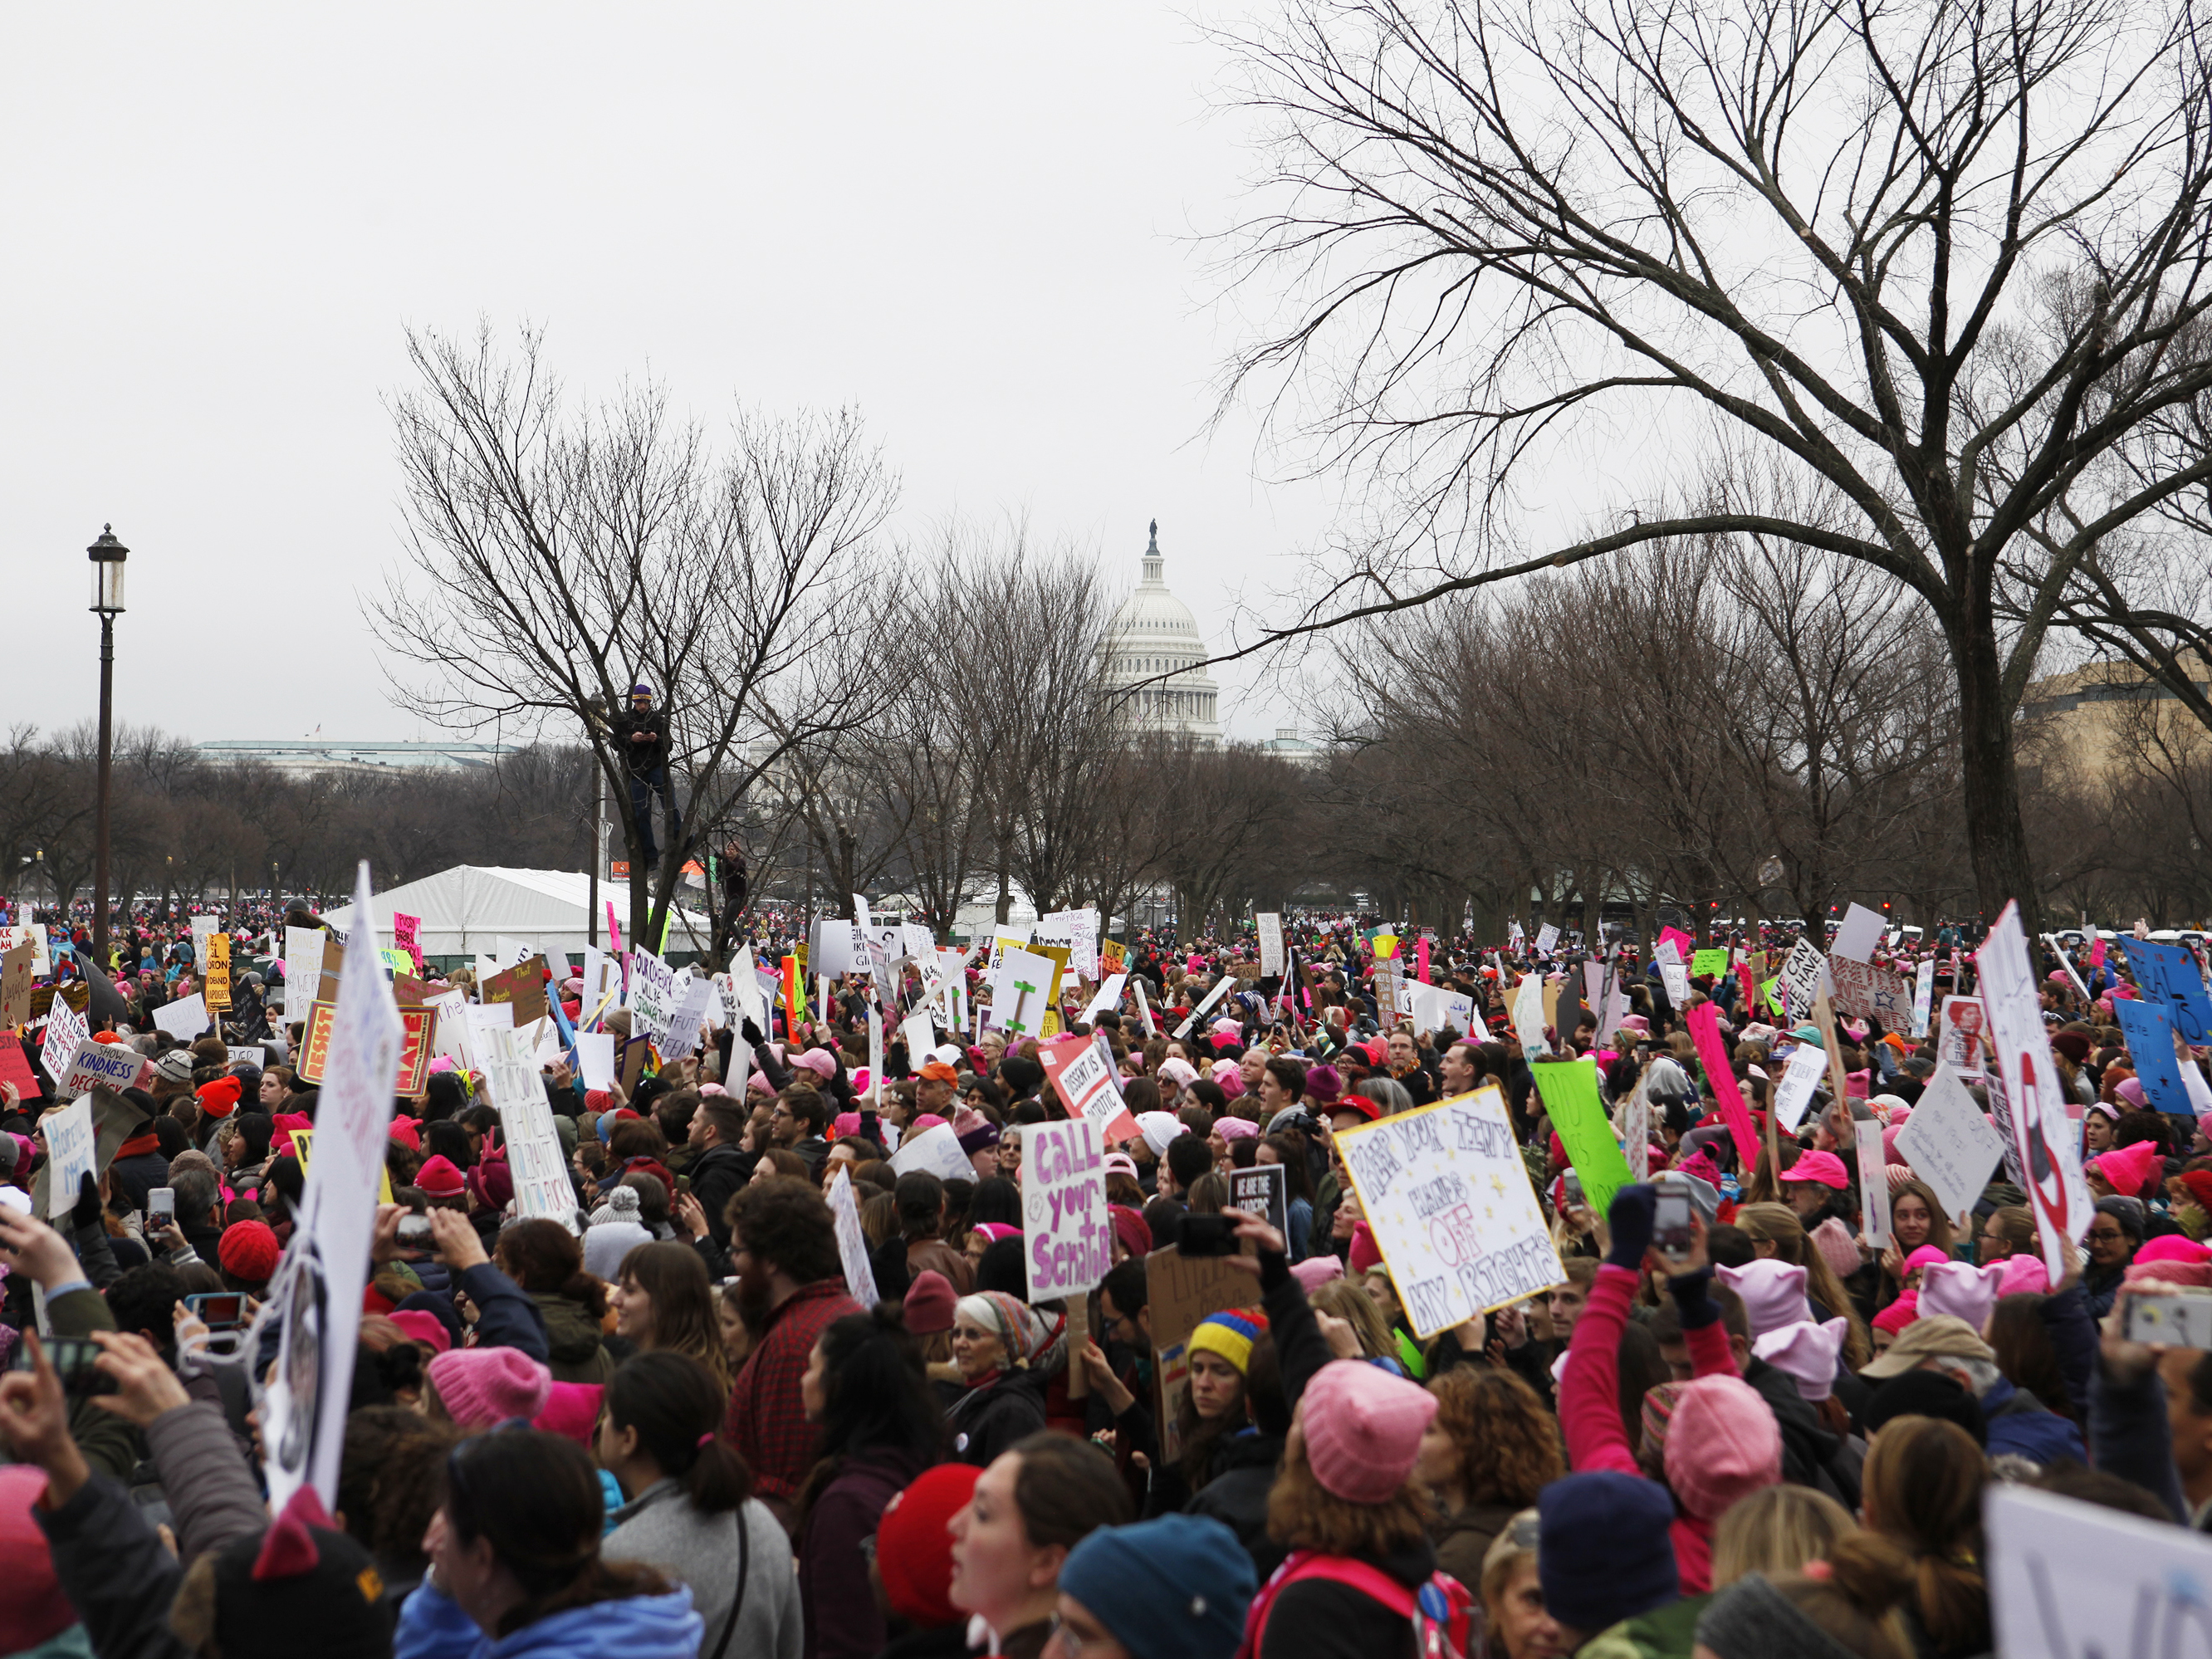 Will You Be Attending The Women's March On Washington This Year? Share Your Story